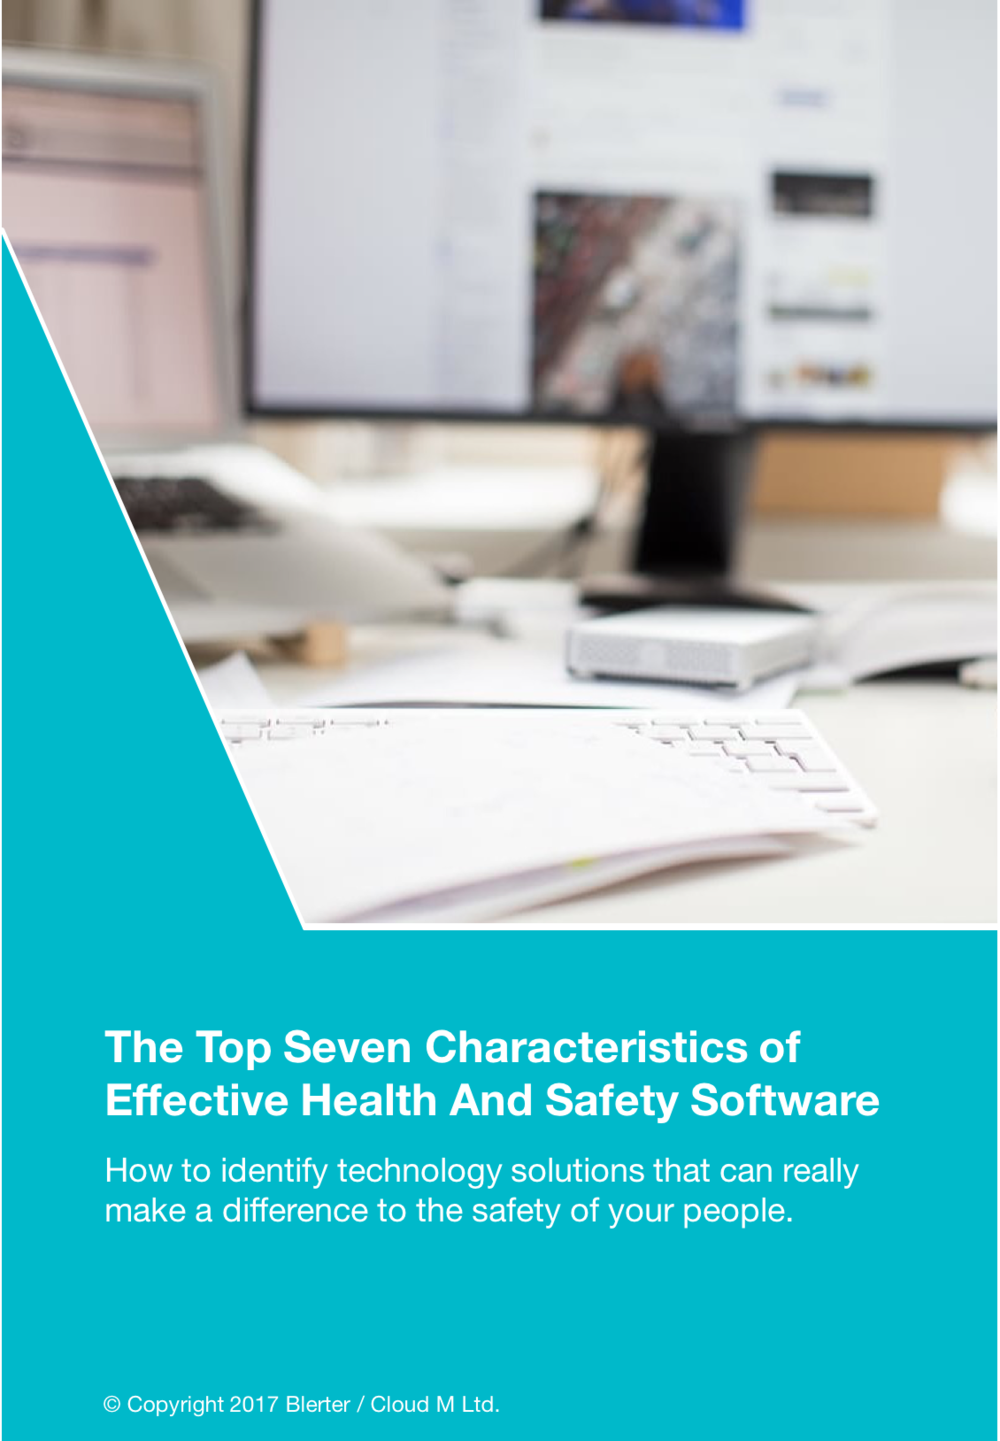 White Paper: Effective Health and Safety Software